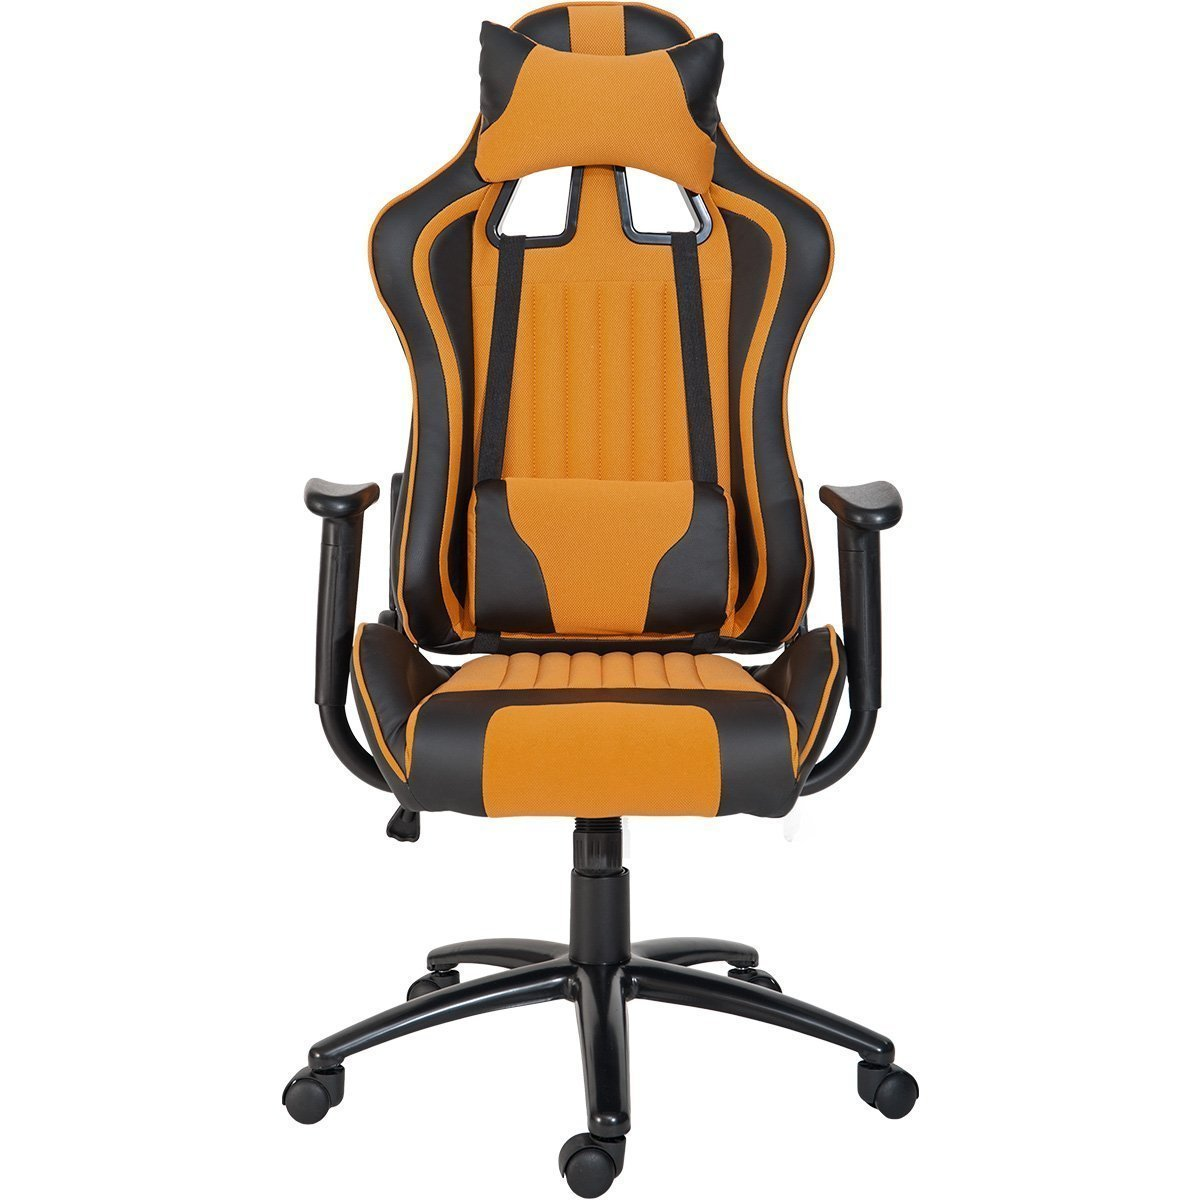 ModernLuxe Odyssey Series Executive Gaming Chair with Adjustable Lumbar Support and Headrest in Soft PU Leather and Mesh Fabric (Orange)